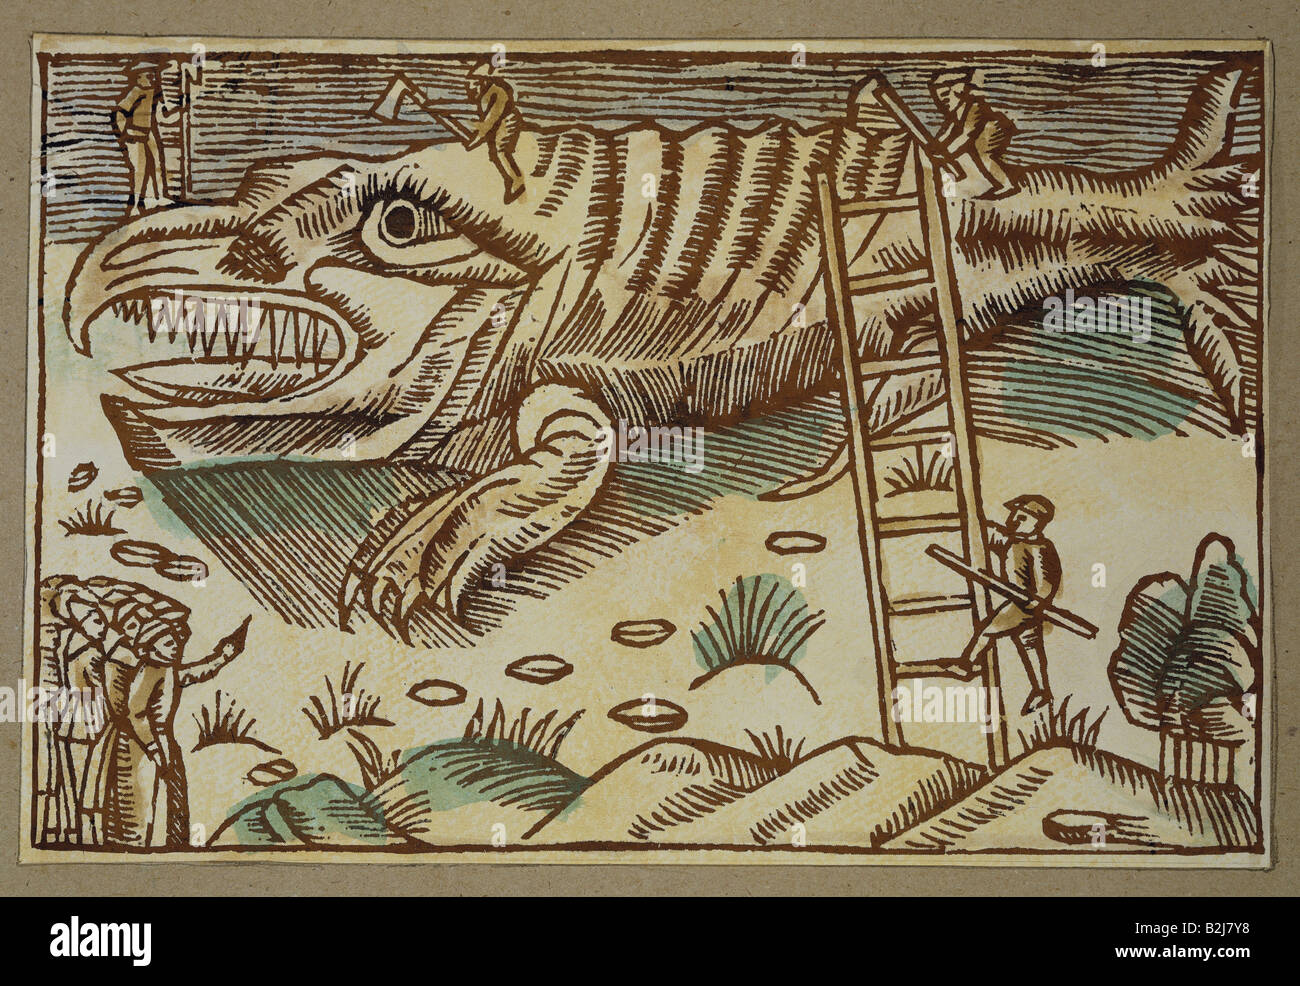 fishing, whaling, peeling of a stranded whale, woodcut, 'Historia de gentibus septentrionalibus' by Olaus - Stock Image